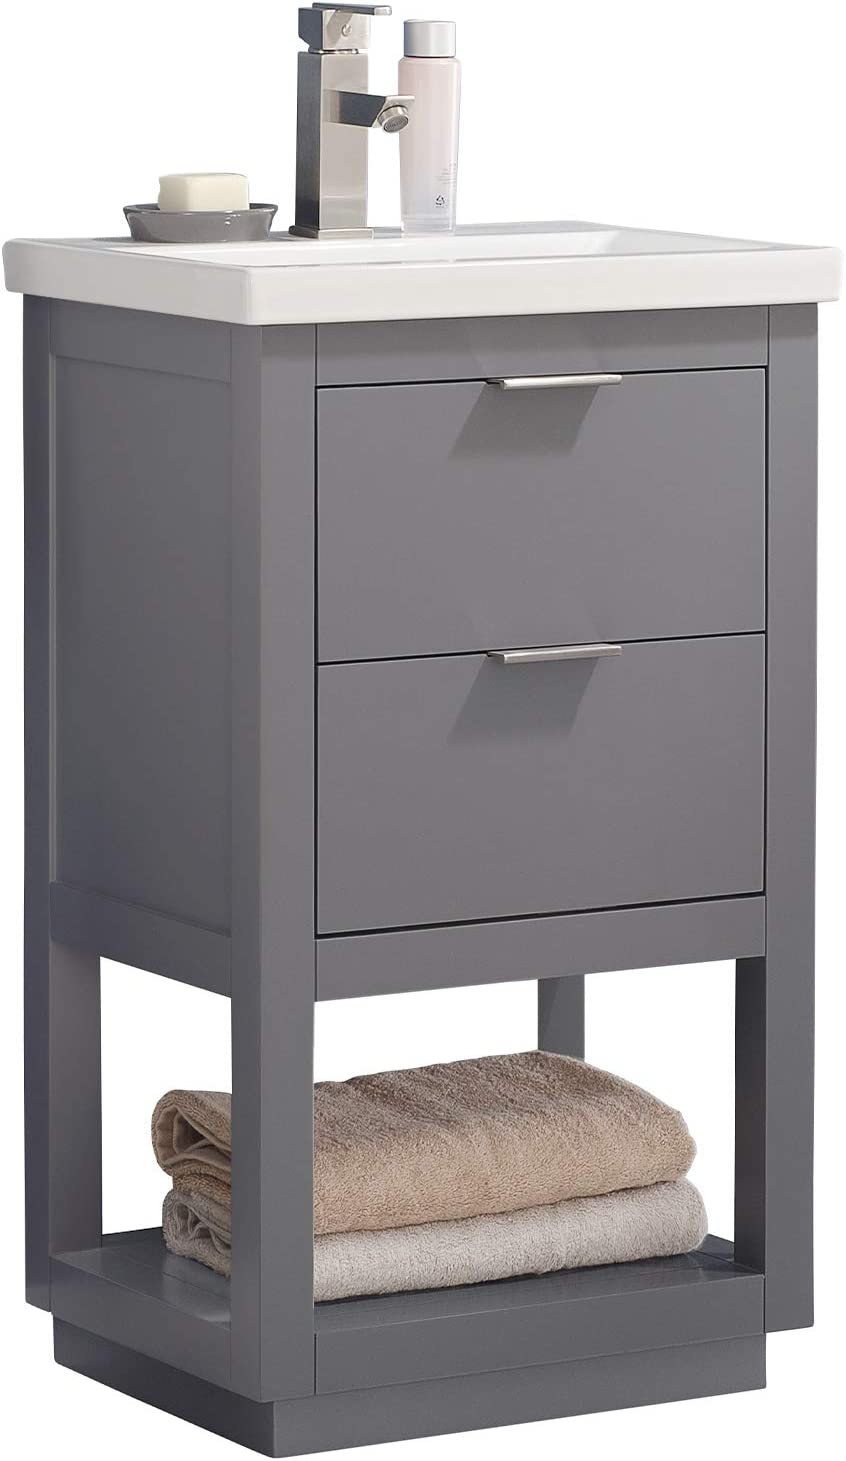 Luca Kitchen Bath Lc20ggp Sydney 20 Bathroom Vanity Set In French Gray With Integrated Porcelain Top Amazon Com